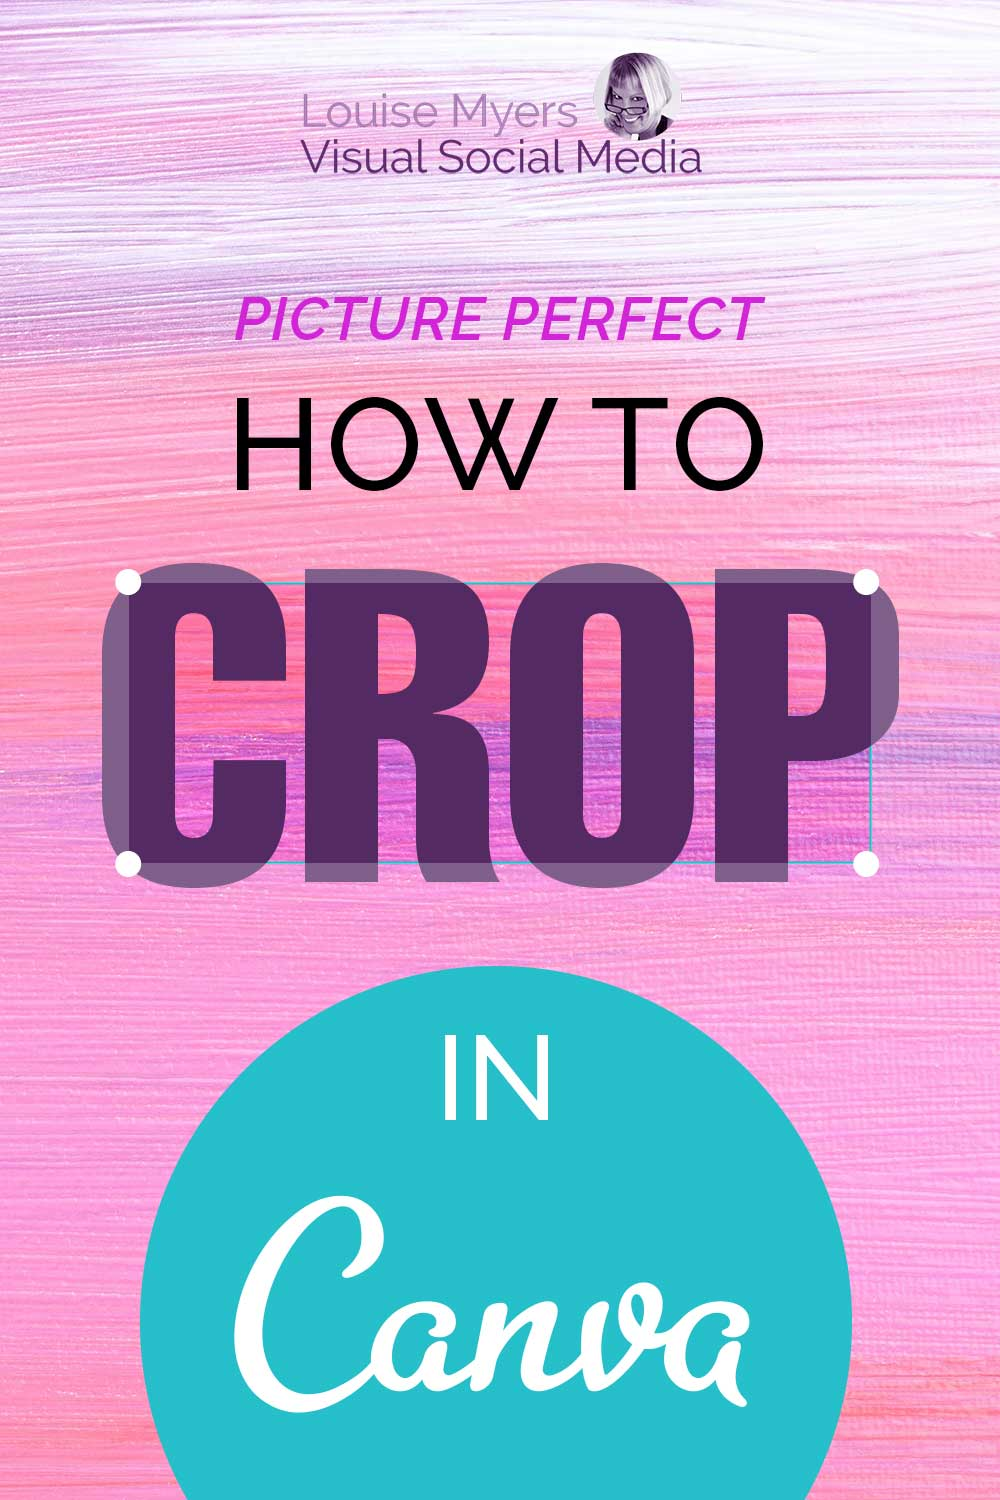 how to crop in canva text on pink watercolor background.